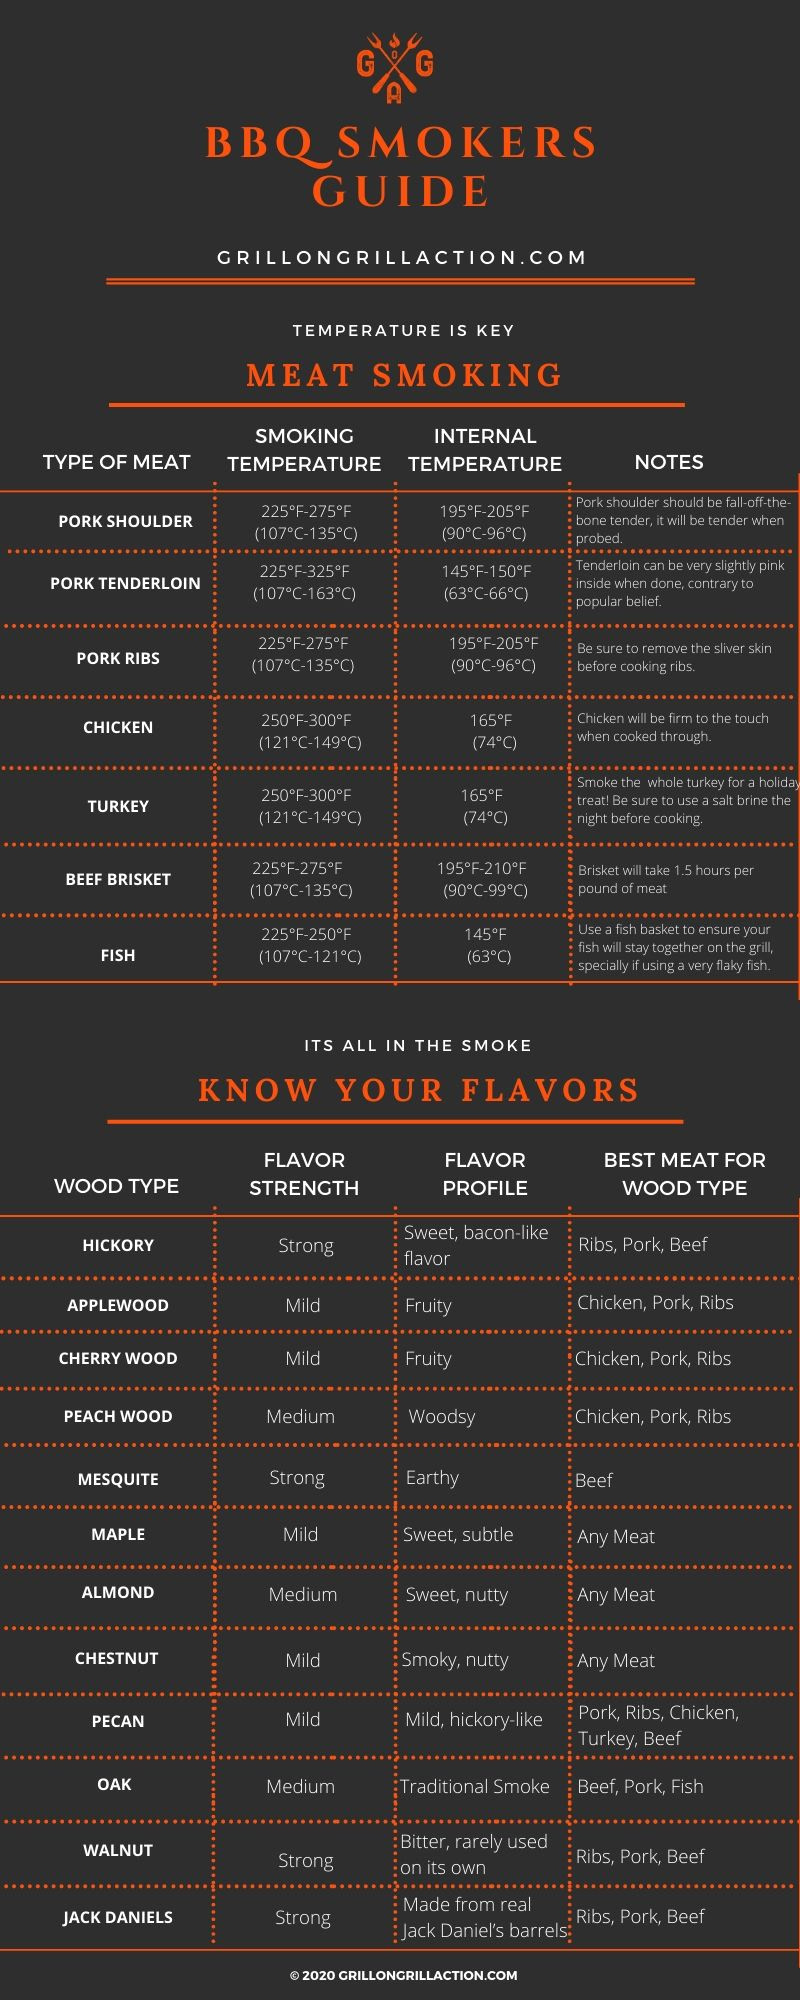 bbq smokers guide